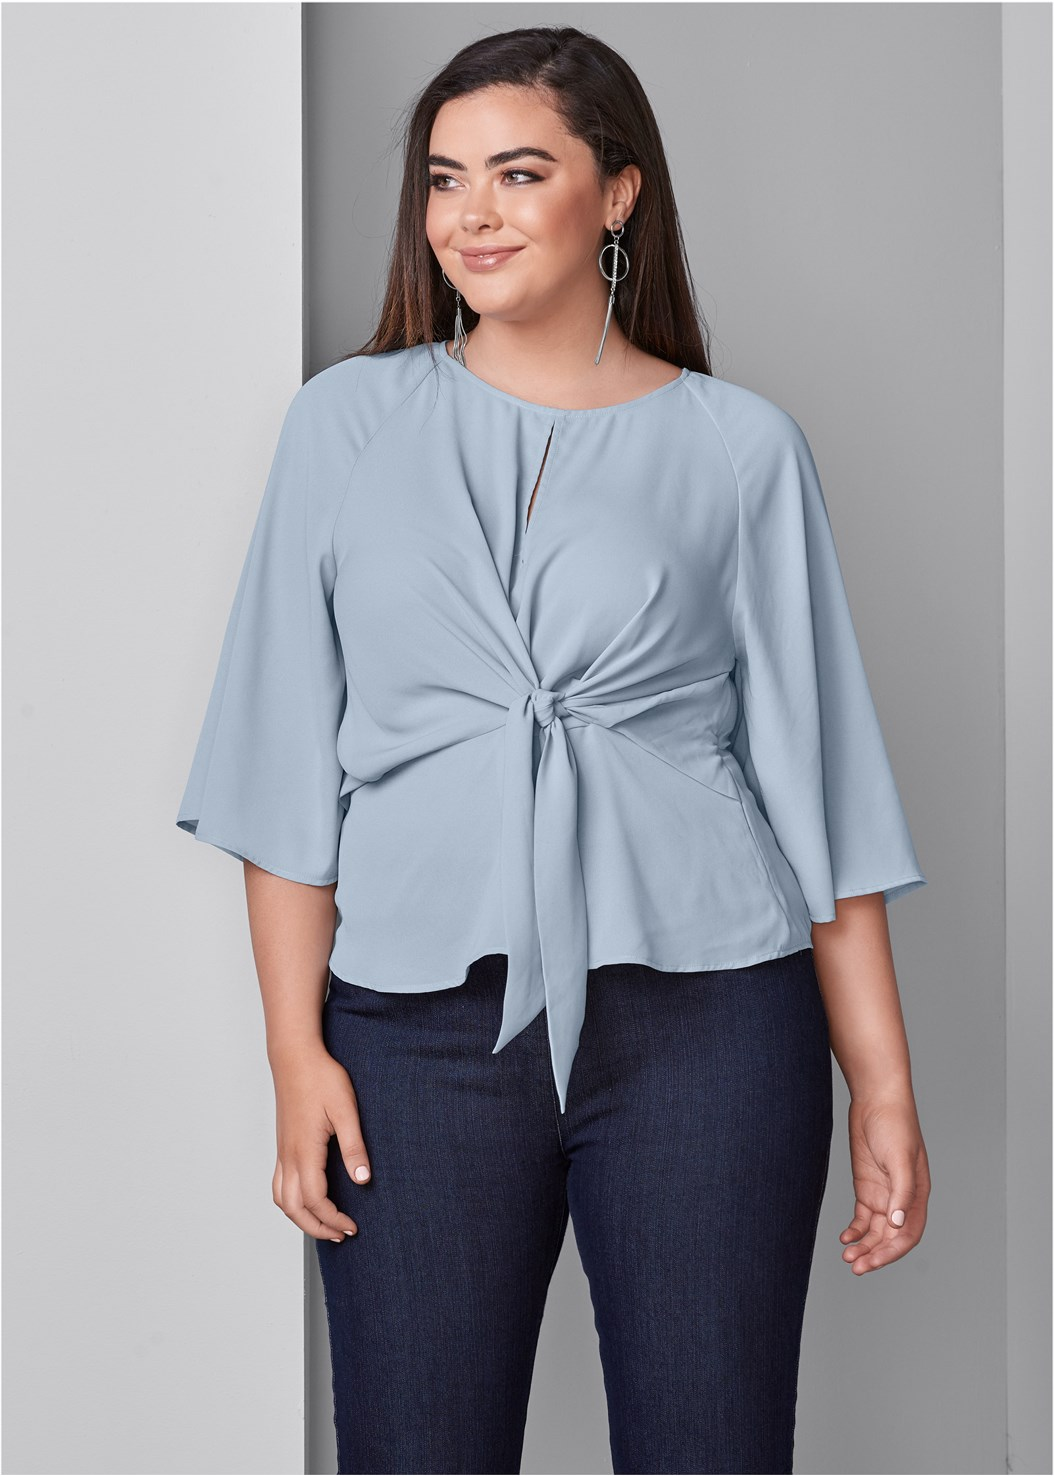 Tie Front Blouse,Mid Rise Slimming Stretch Jeggings